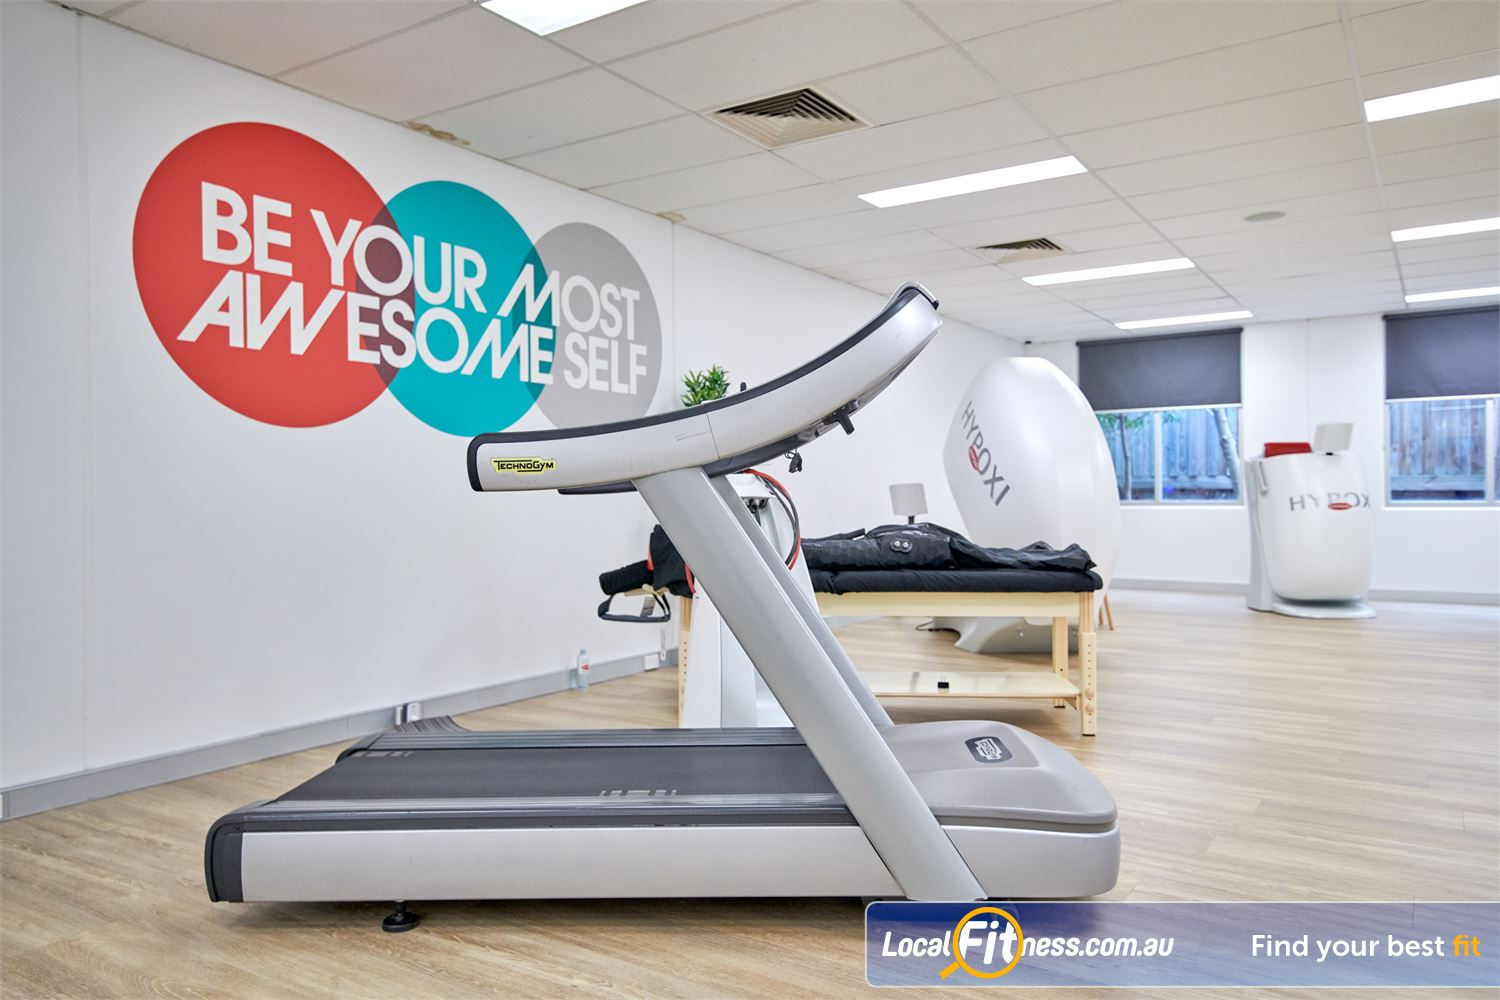 HYPOXI Weight Loss Near Glen Iris Low impact exercise on the treadmill while the vacuum machines target fat loss.